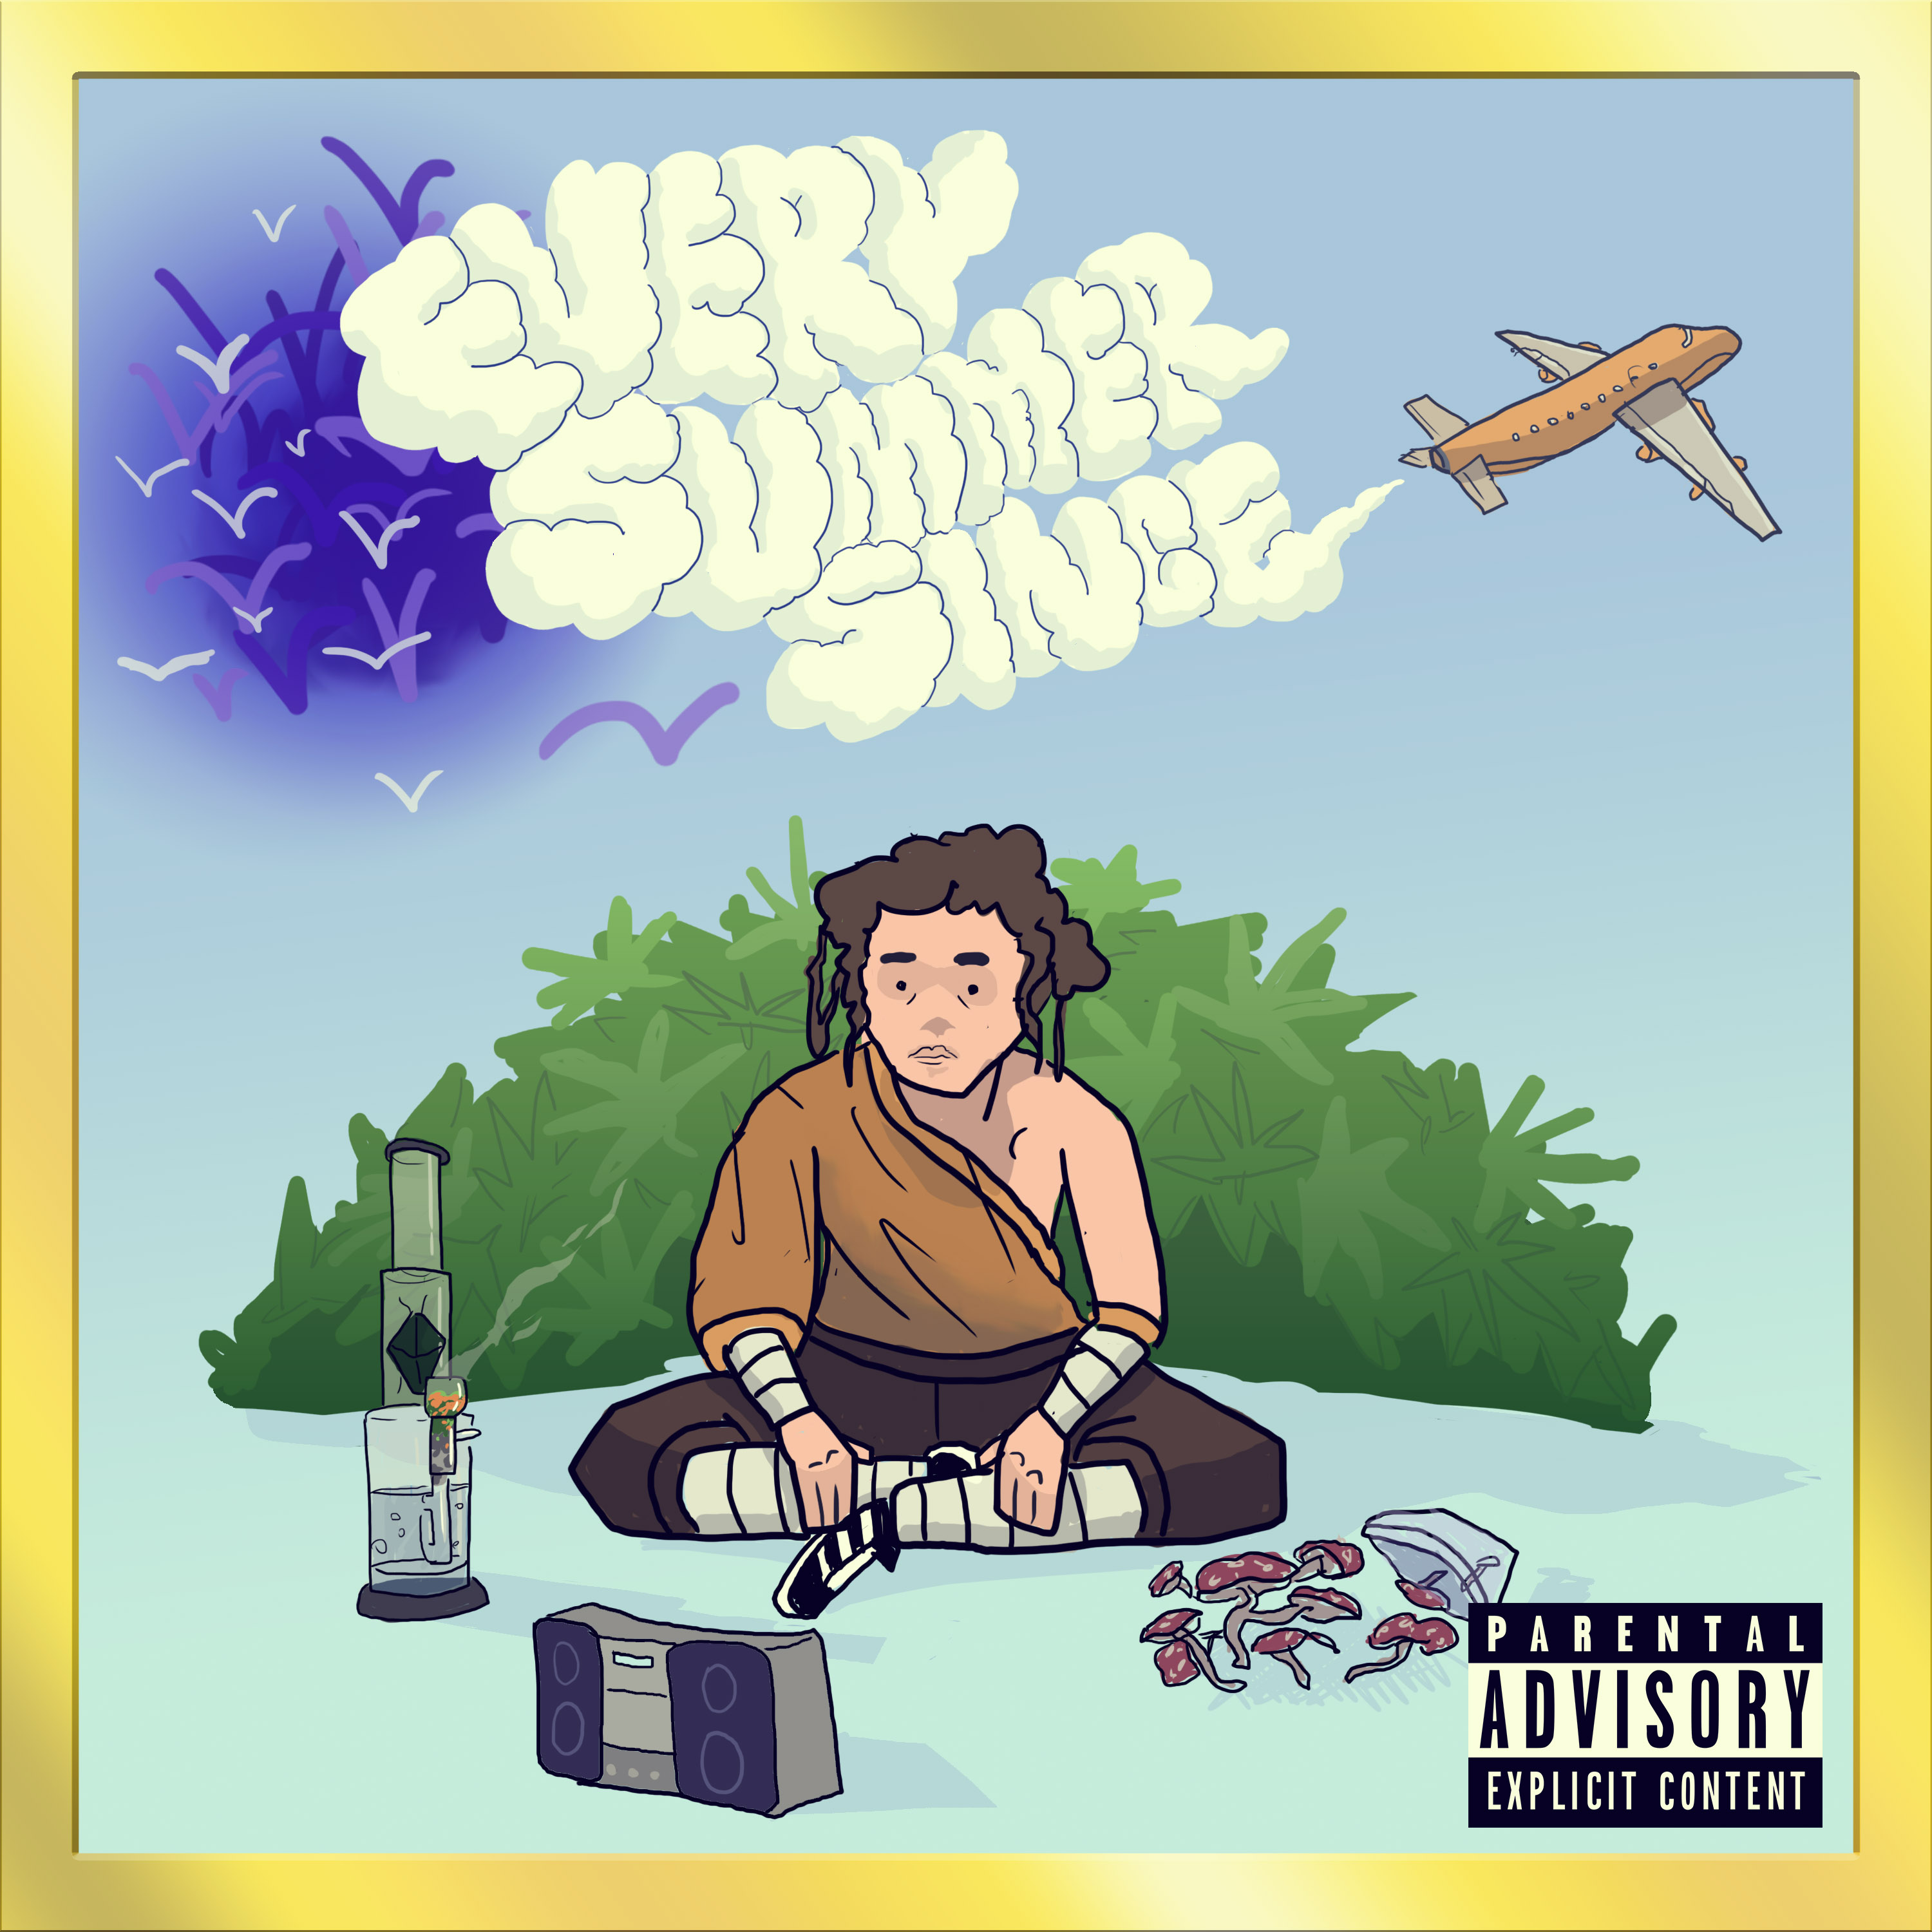 #ScienceOnMusicSERIES: MAXX THE MUFFIN MAN - Every Summer Since Mixtape Review